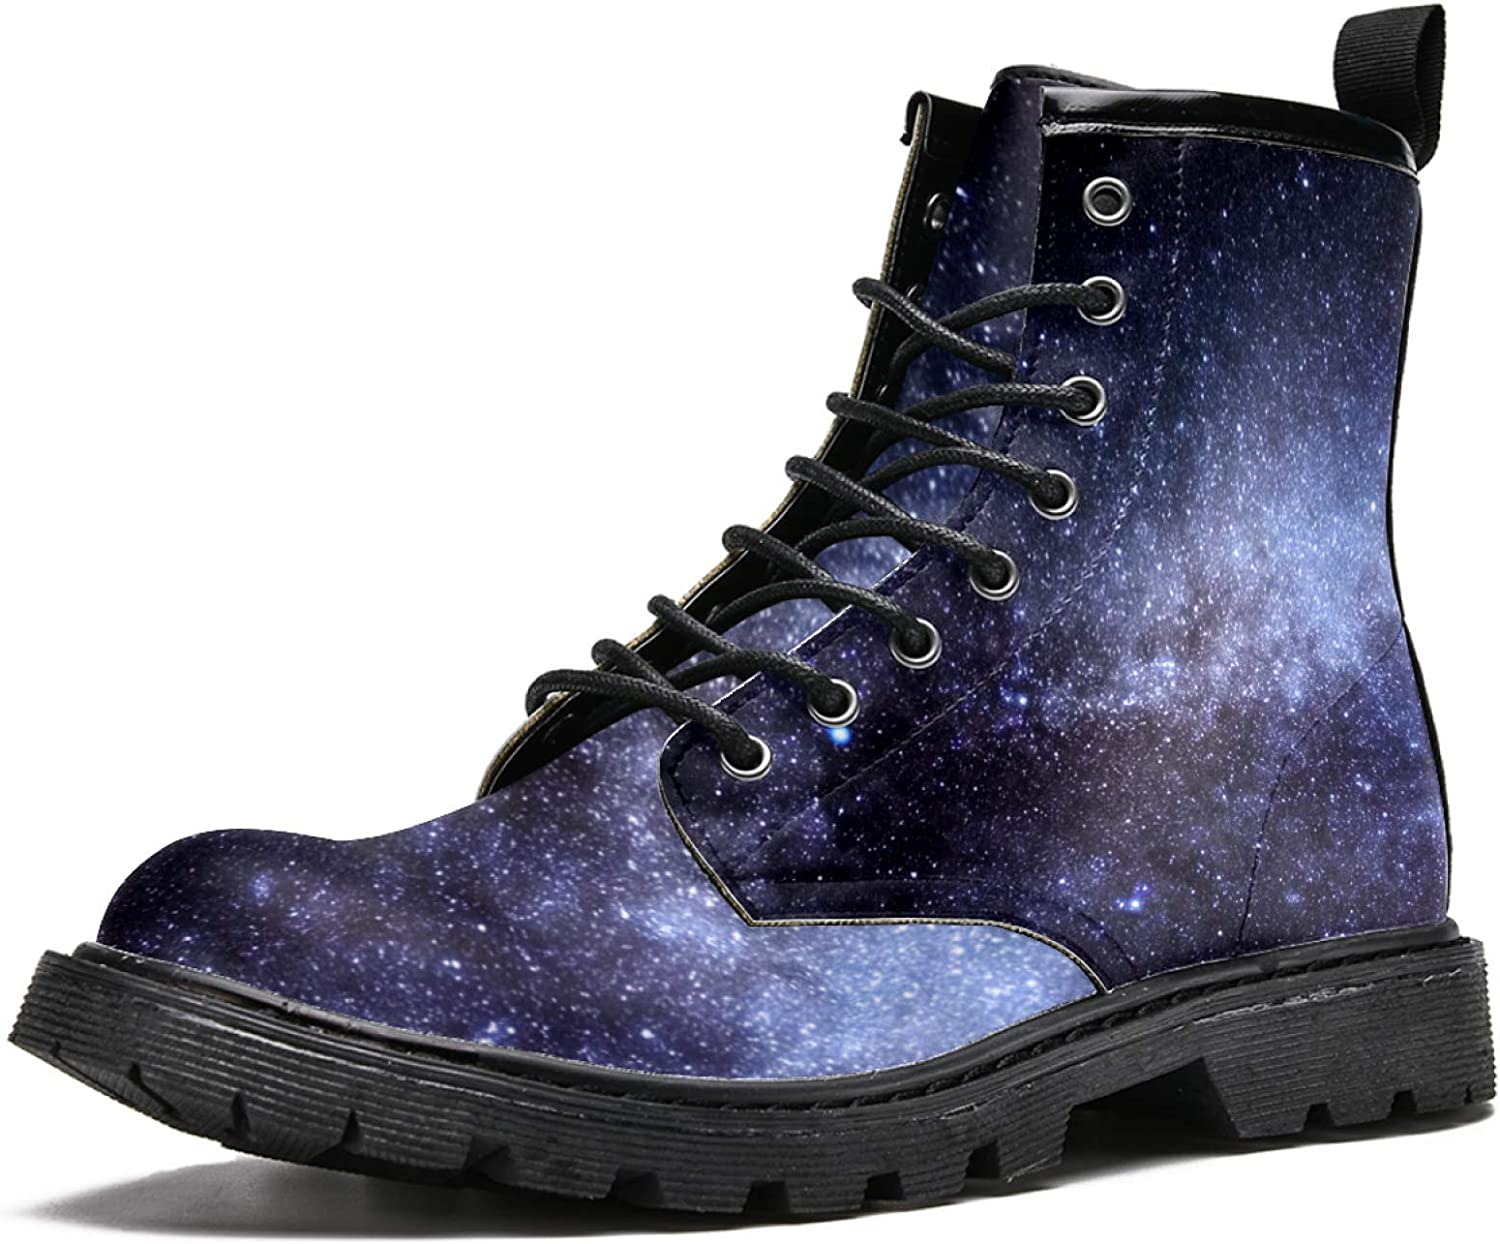 Cheap SALE Start Max 54% OFF Women's High-Top Fashion Boot Stars The Starry In Sky